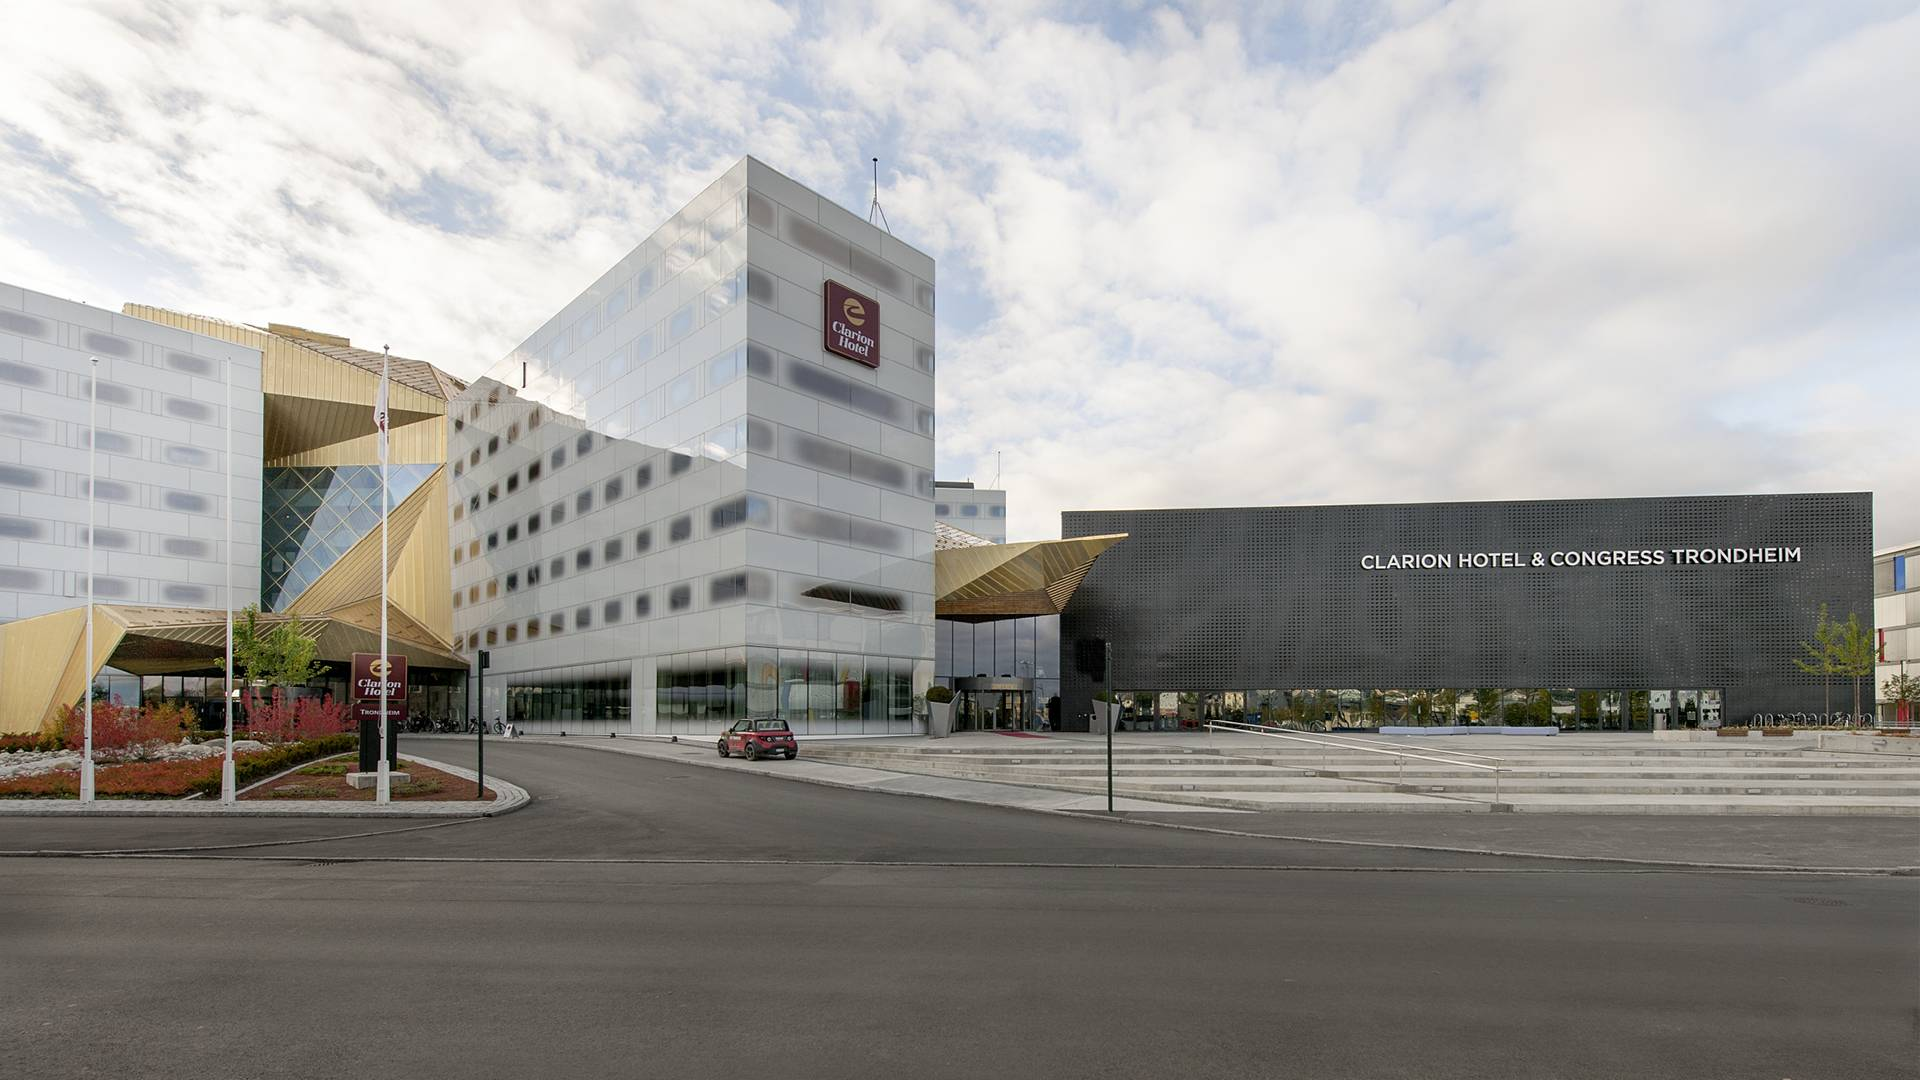 FRONT VIEW - Clarion Hotel & Congress - SPOL Architects